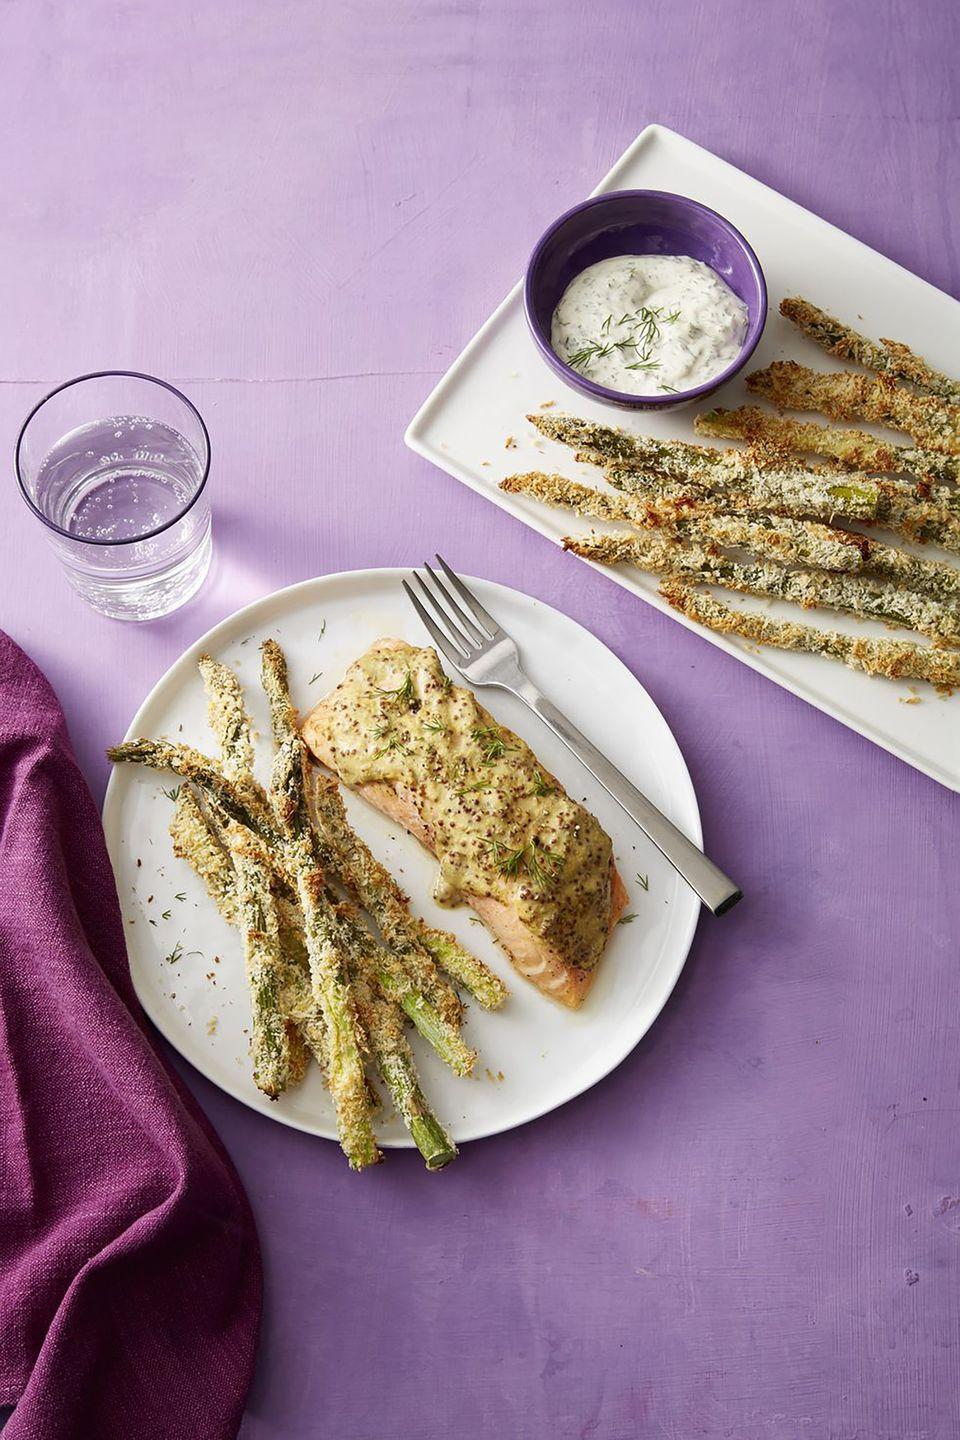 """<p>An alternative to french fries, these asparagus """"fries"""" are topped with panko bread crumbs and are a great addition to a salmon dinner. </p><p><a href=""""https://www.womansday.com/food-recipes/a19156229/mustard-dill-salmon-with-crispy-asparagus-fries-recipe/"""" rel=""""nofollow noopener"""" target=""""_blank"""" data-ylk=""""slk:Get the recipe for Mustard-Dill Salmon with Crispy Asparagus Fries."""" class=""""link rapid-noclick-resp""""><em>Get the recipe for Mustard-Dill Salmon with Crispy Asparagus Fries.</em></a></p>"""